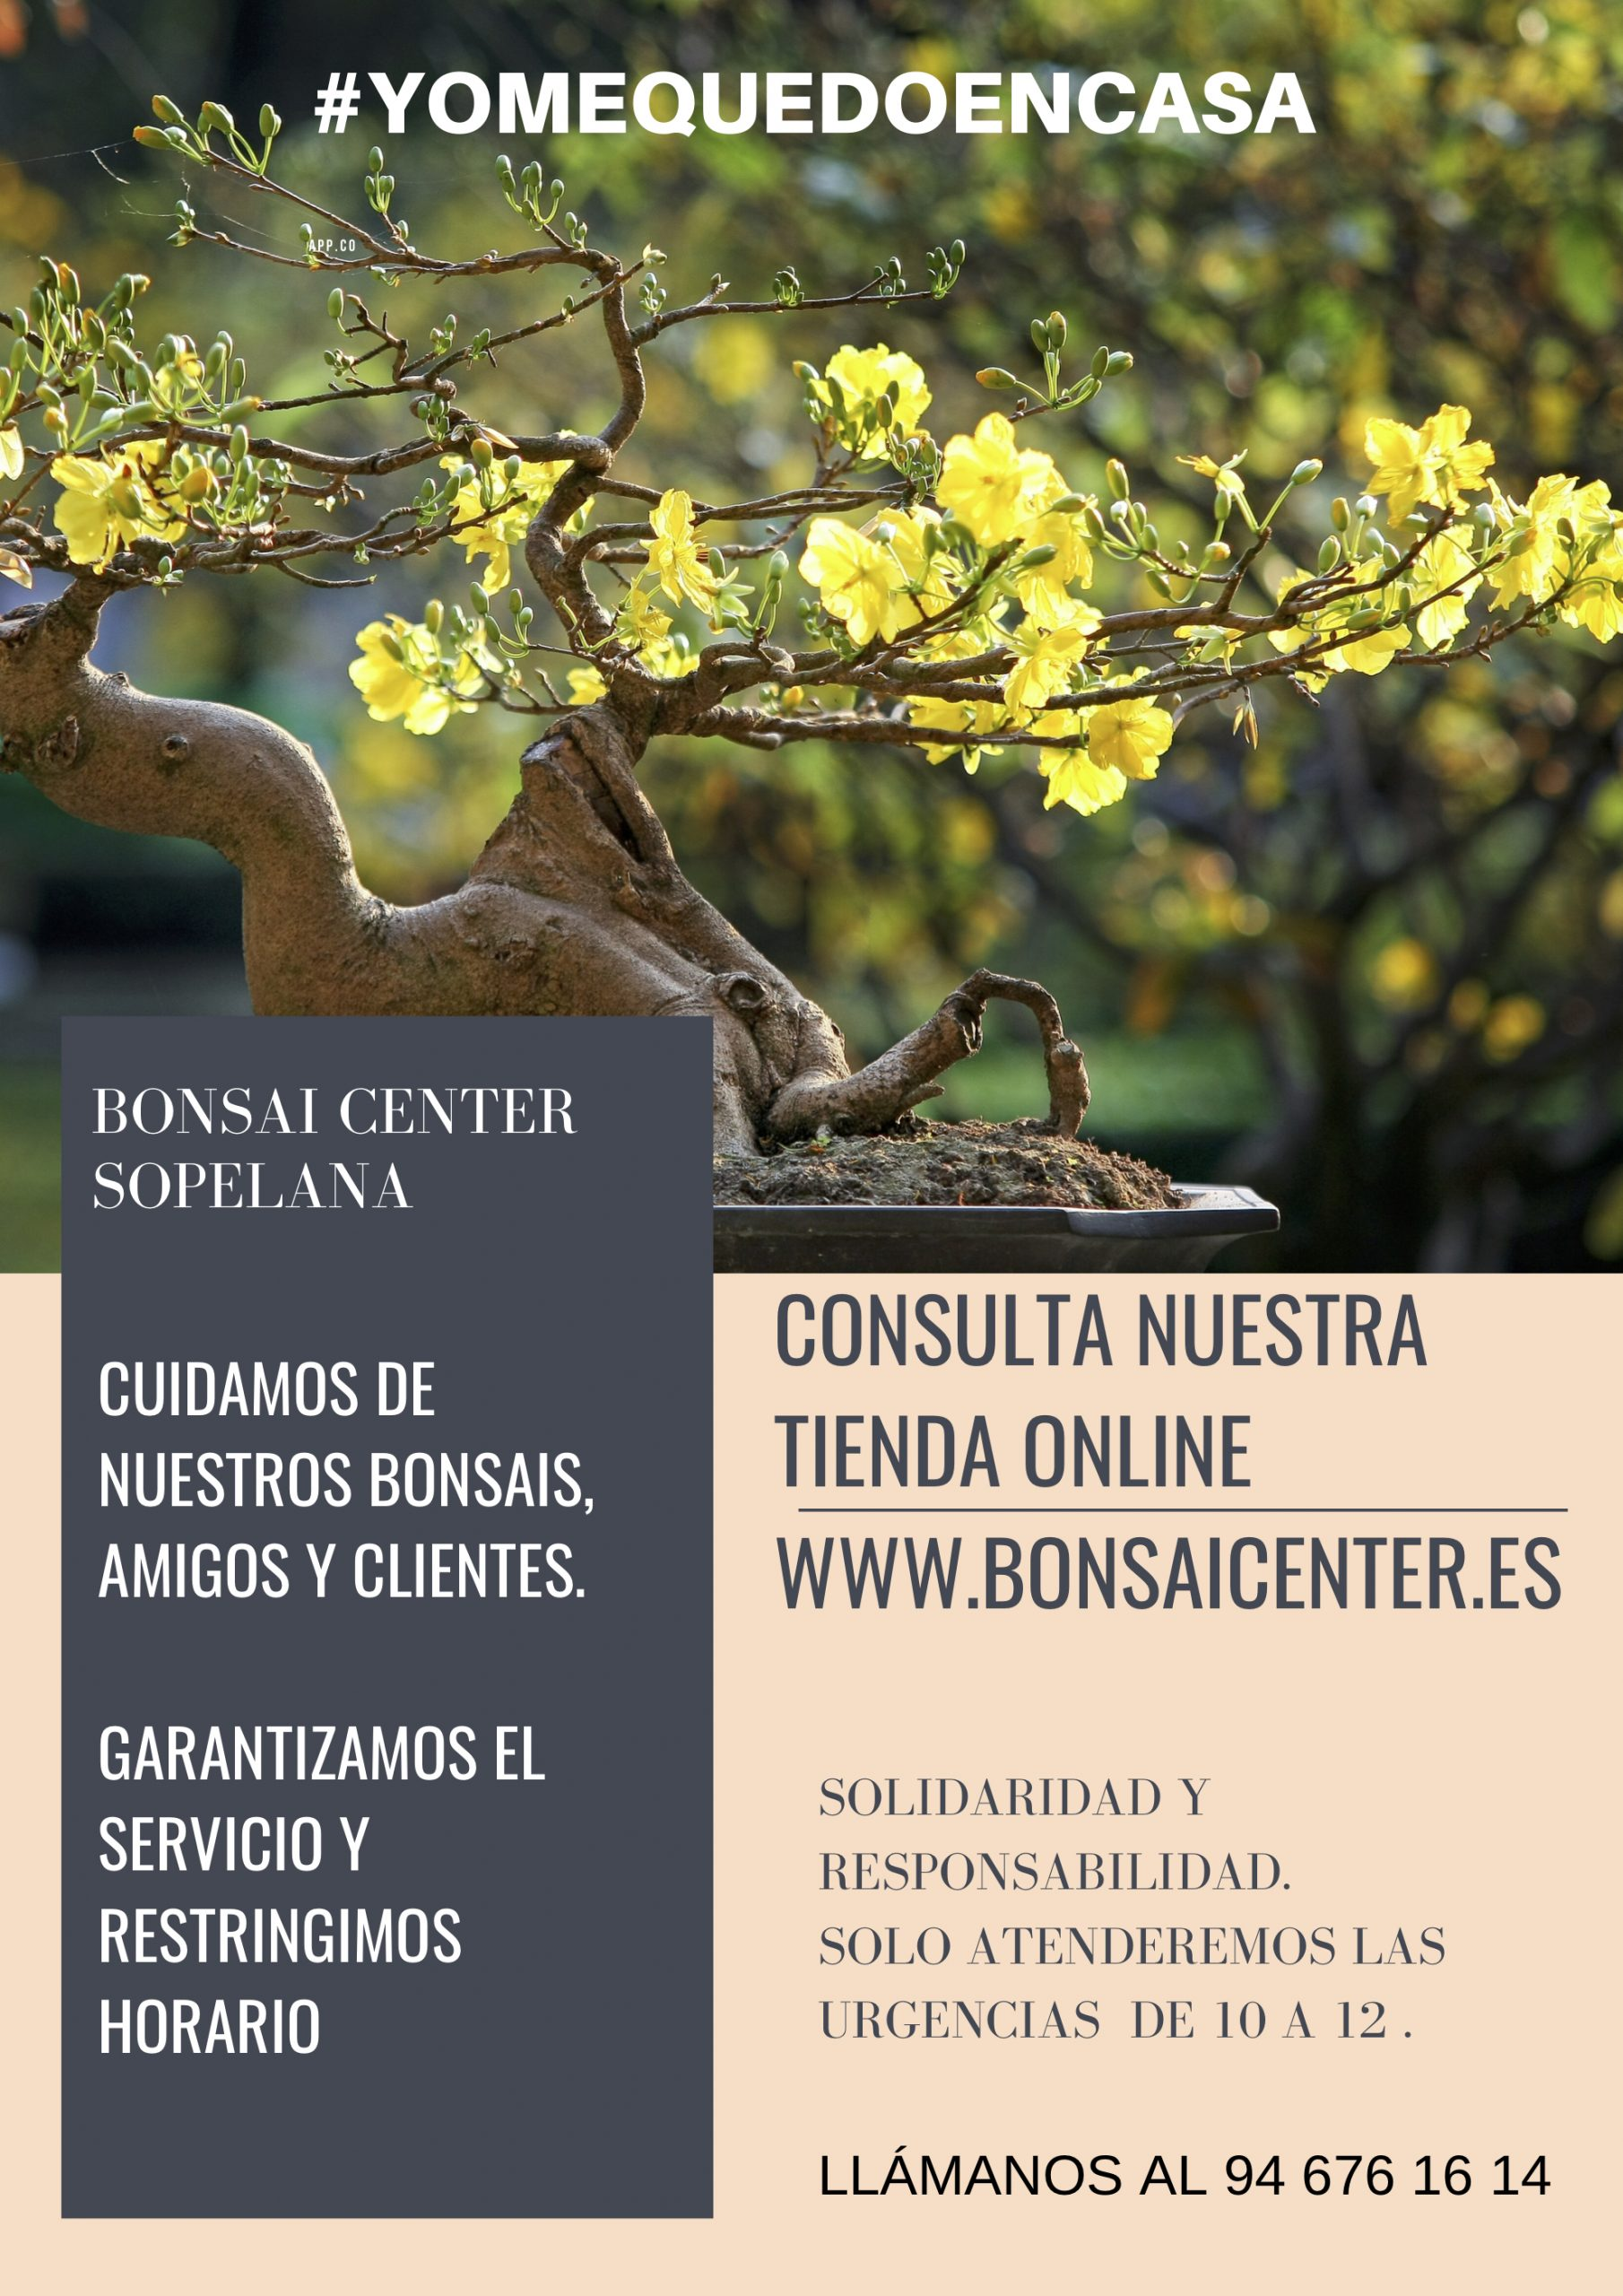 Comunicado Bonsai Center Sopelana